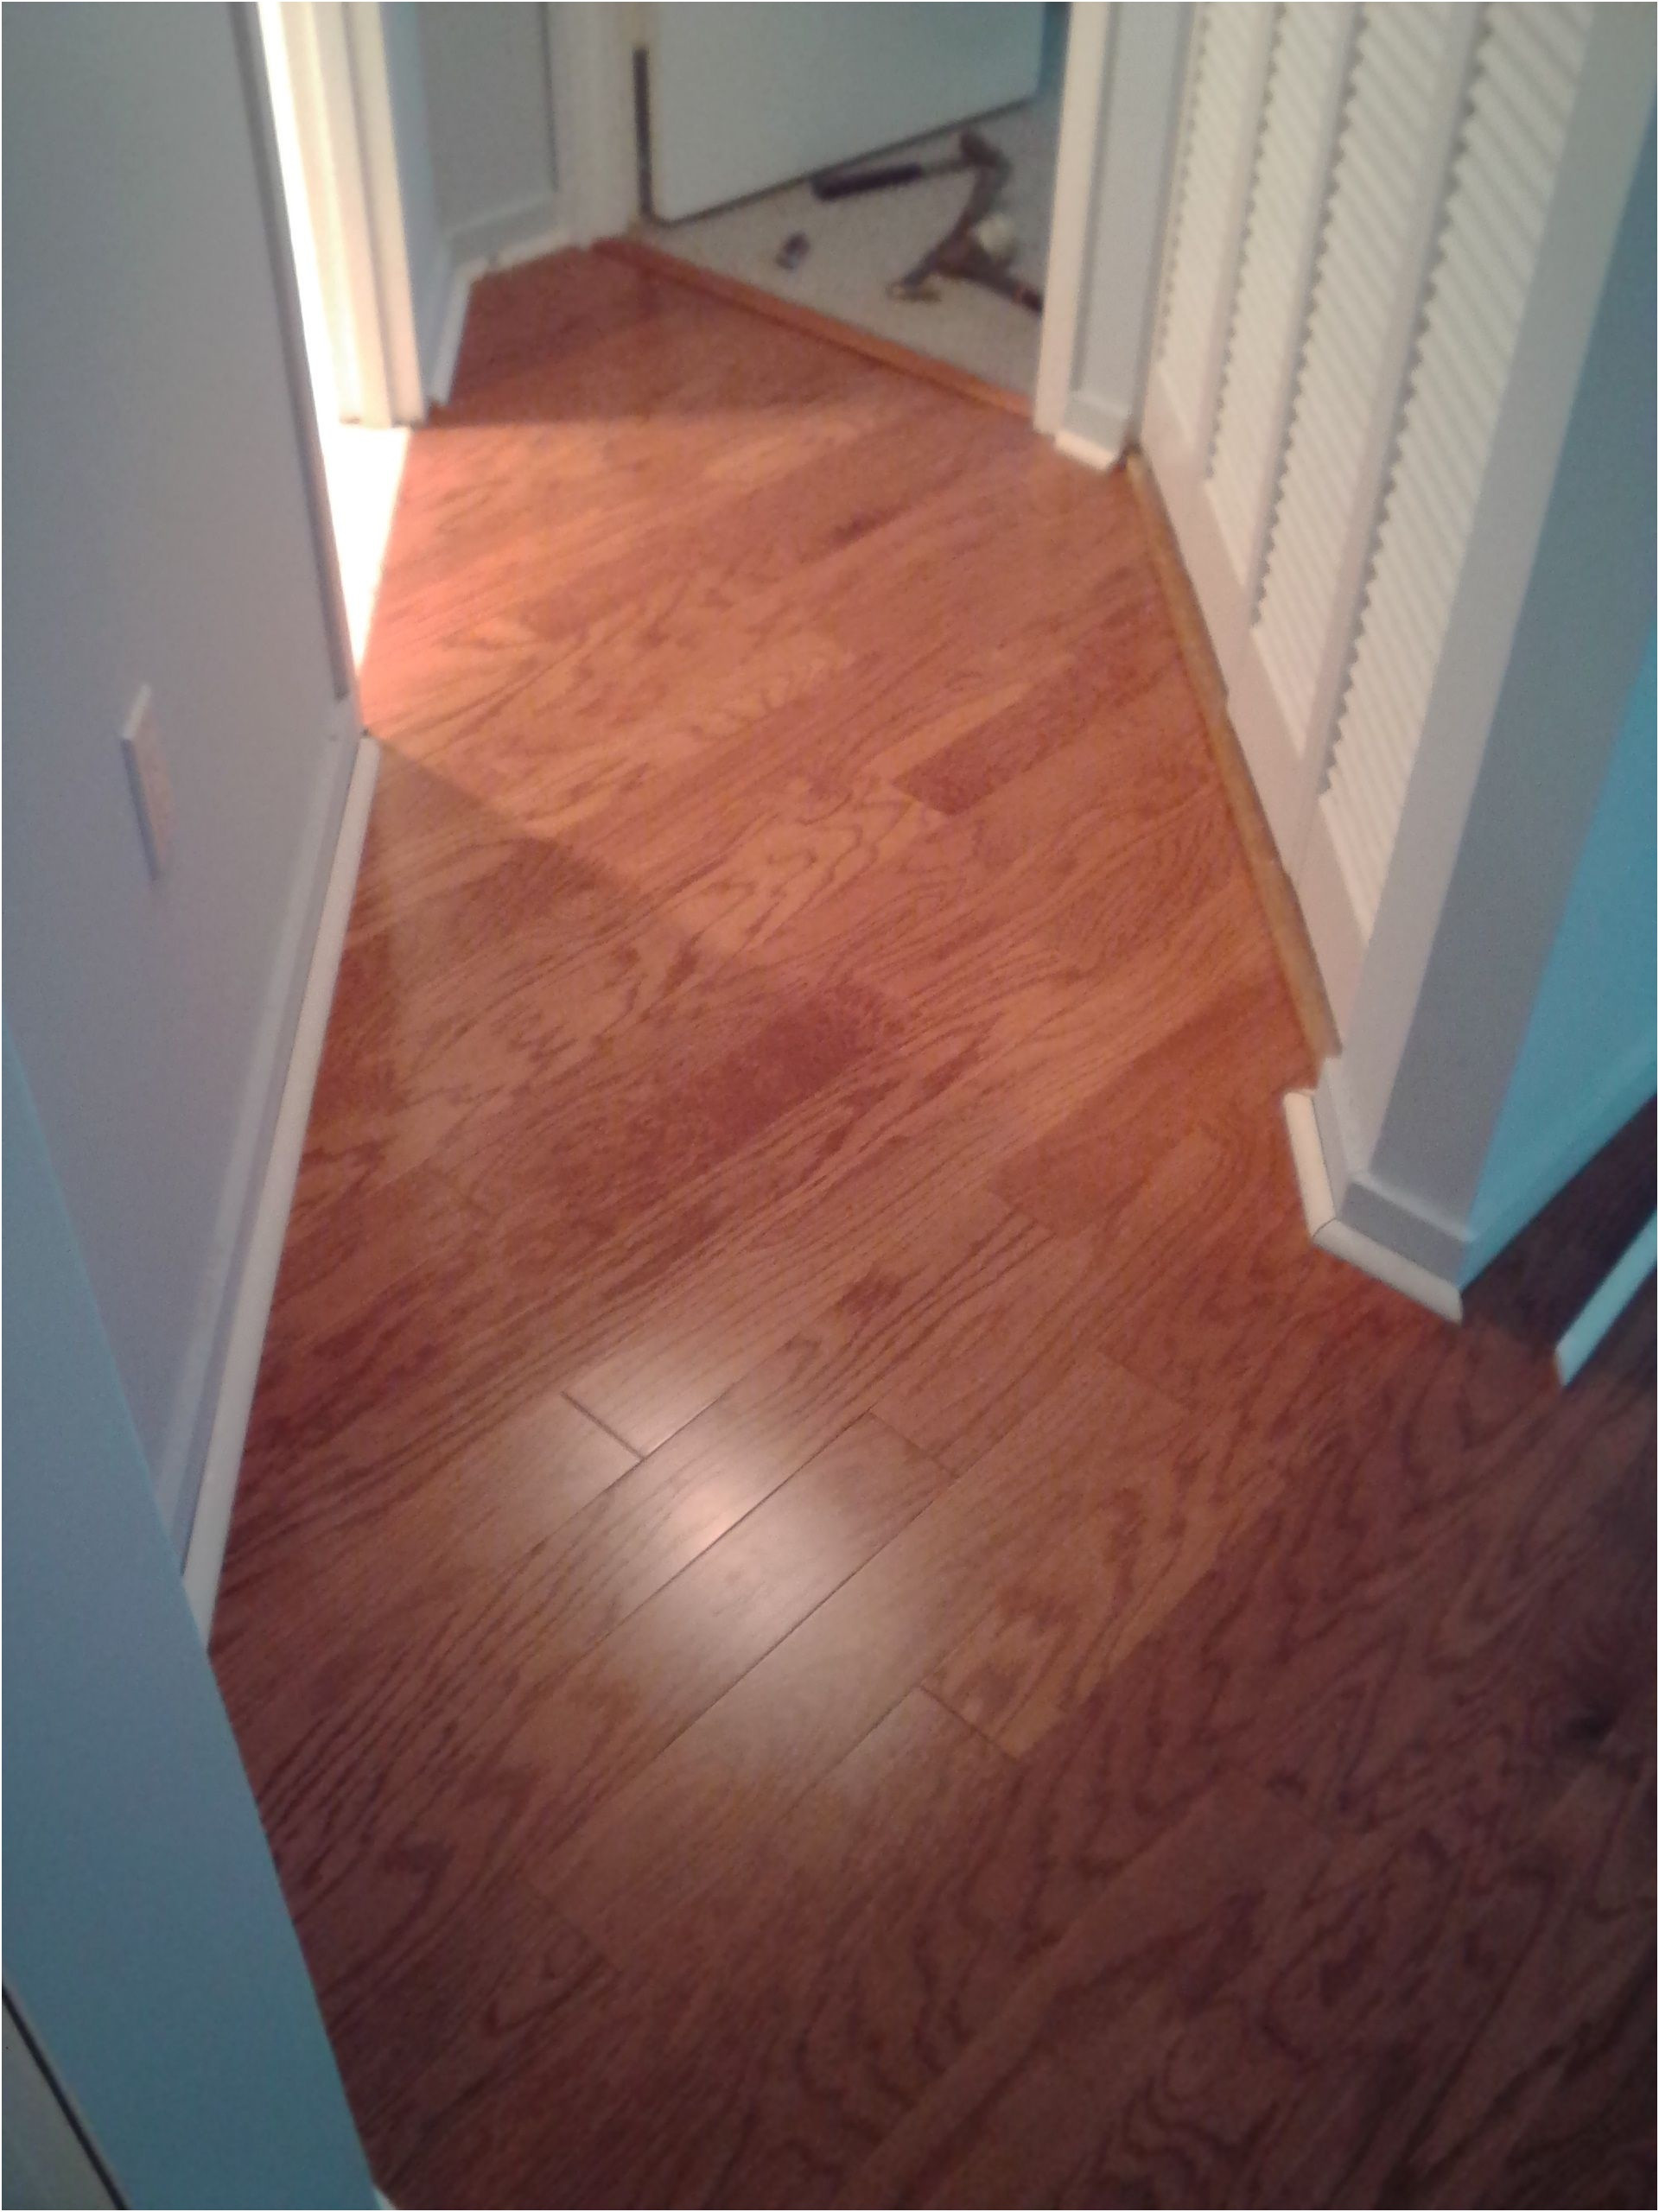 how much do engineered hardwood floors cost of engineered wood flooring installation guide awesome engineered inside engineered wood flooring installation guide awesome engineered hardwood flooring diagonal installation throughout the